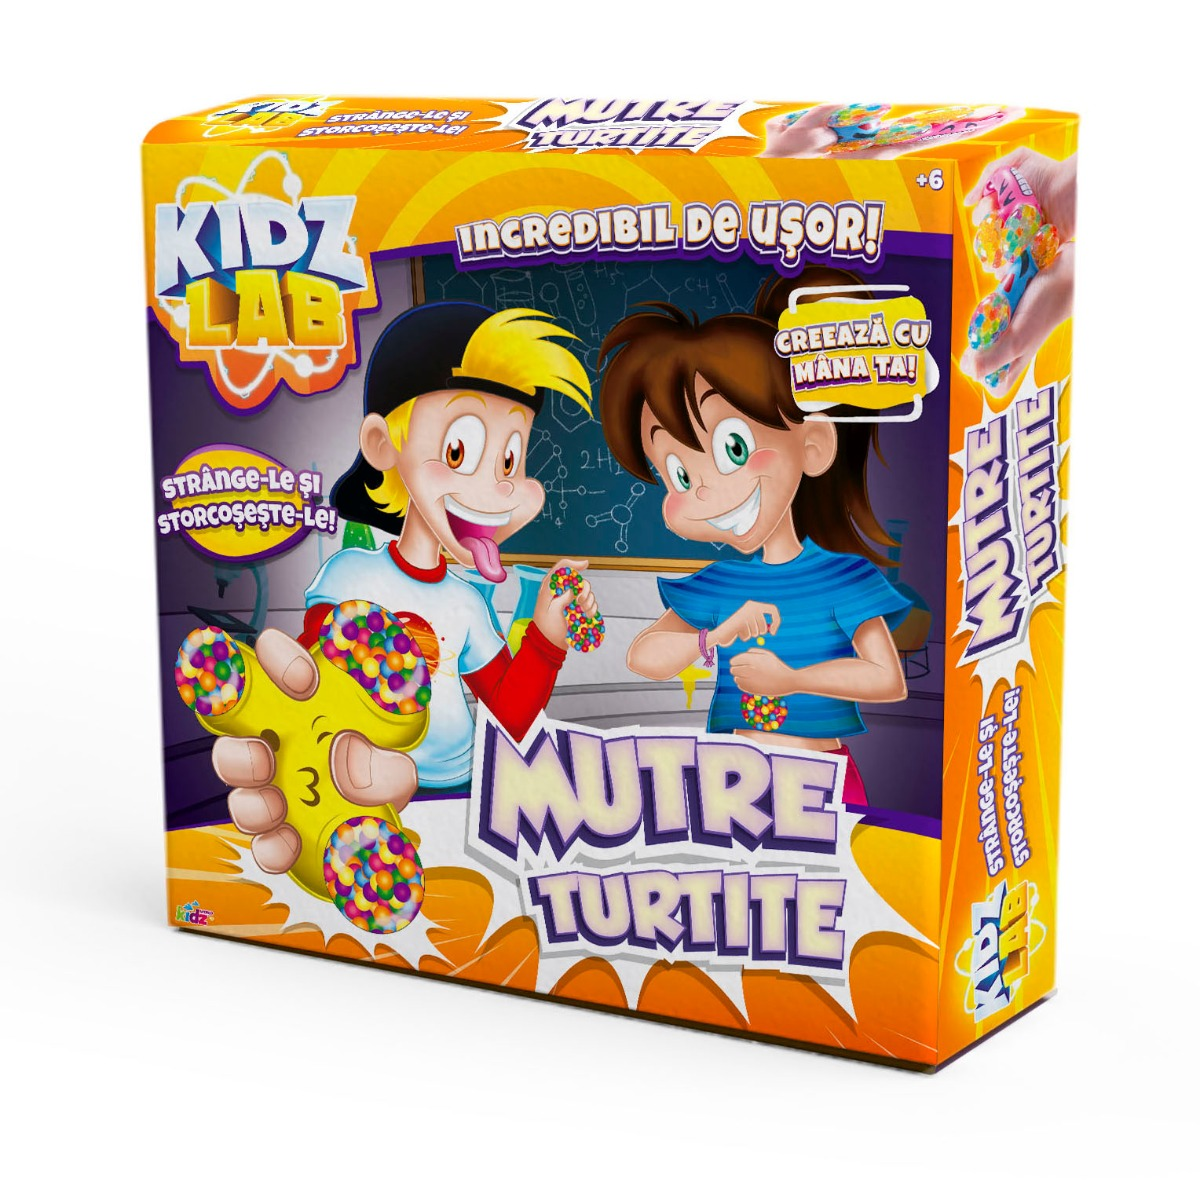 Set de creatie Kidz Lab, Mutre Turtite